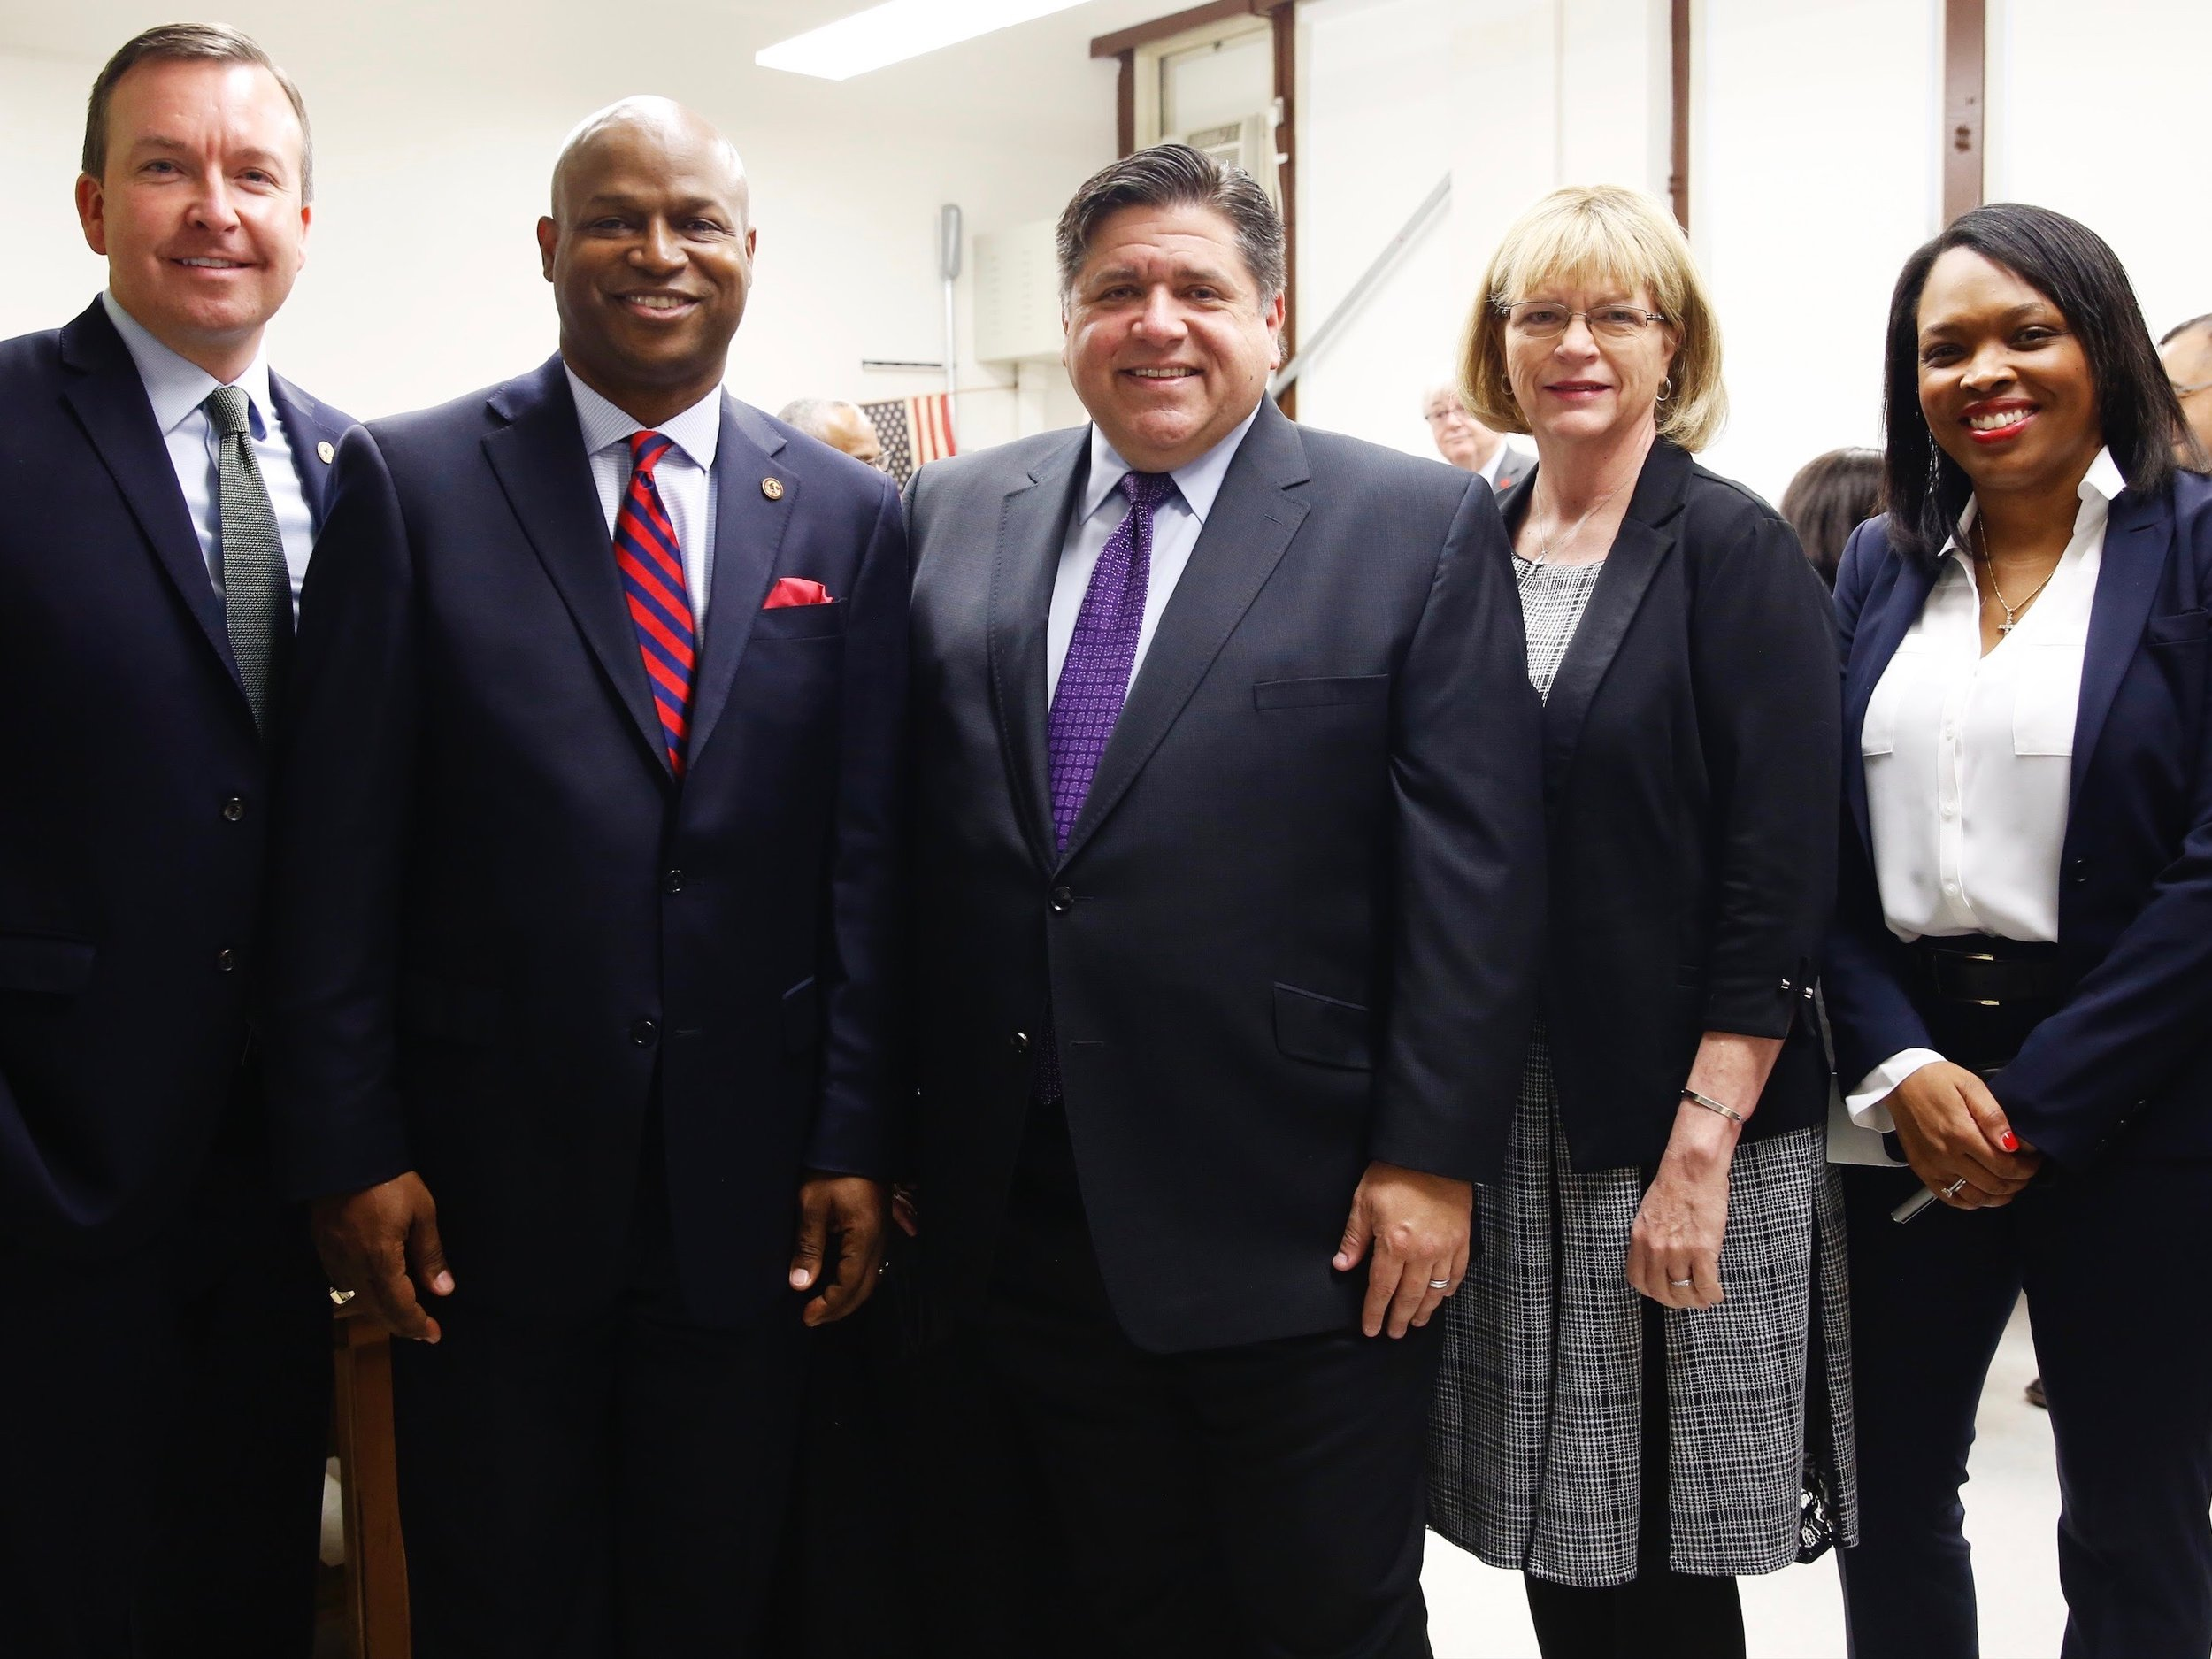 Gov.-elect Pritzker (center) with the leaders of his education transition committee: state Sen. Andy Manar, state Rep. Chris Welch, IEA President Kathi Griffin, and CPS CEO Janice Jackson. (Pritzker Transition Press Team)